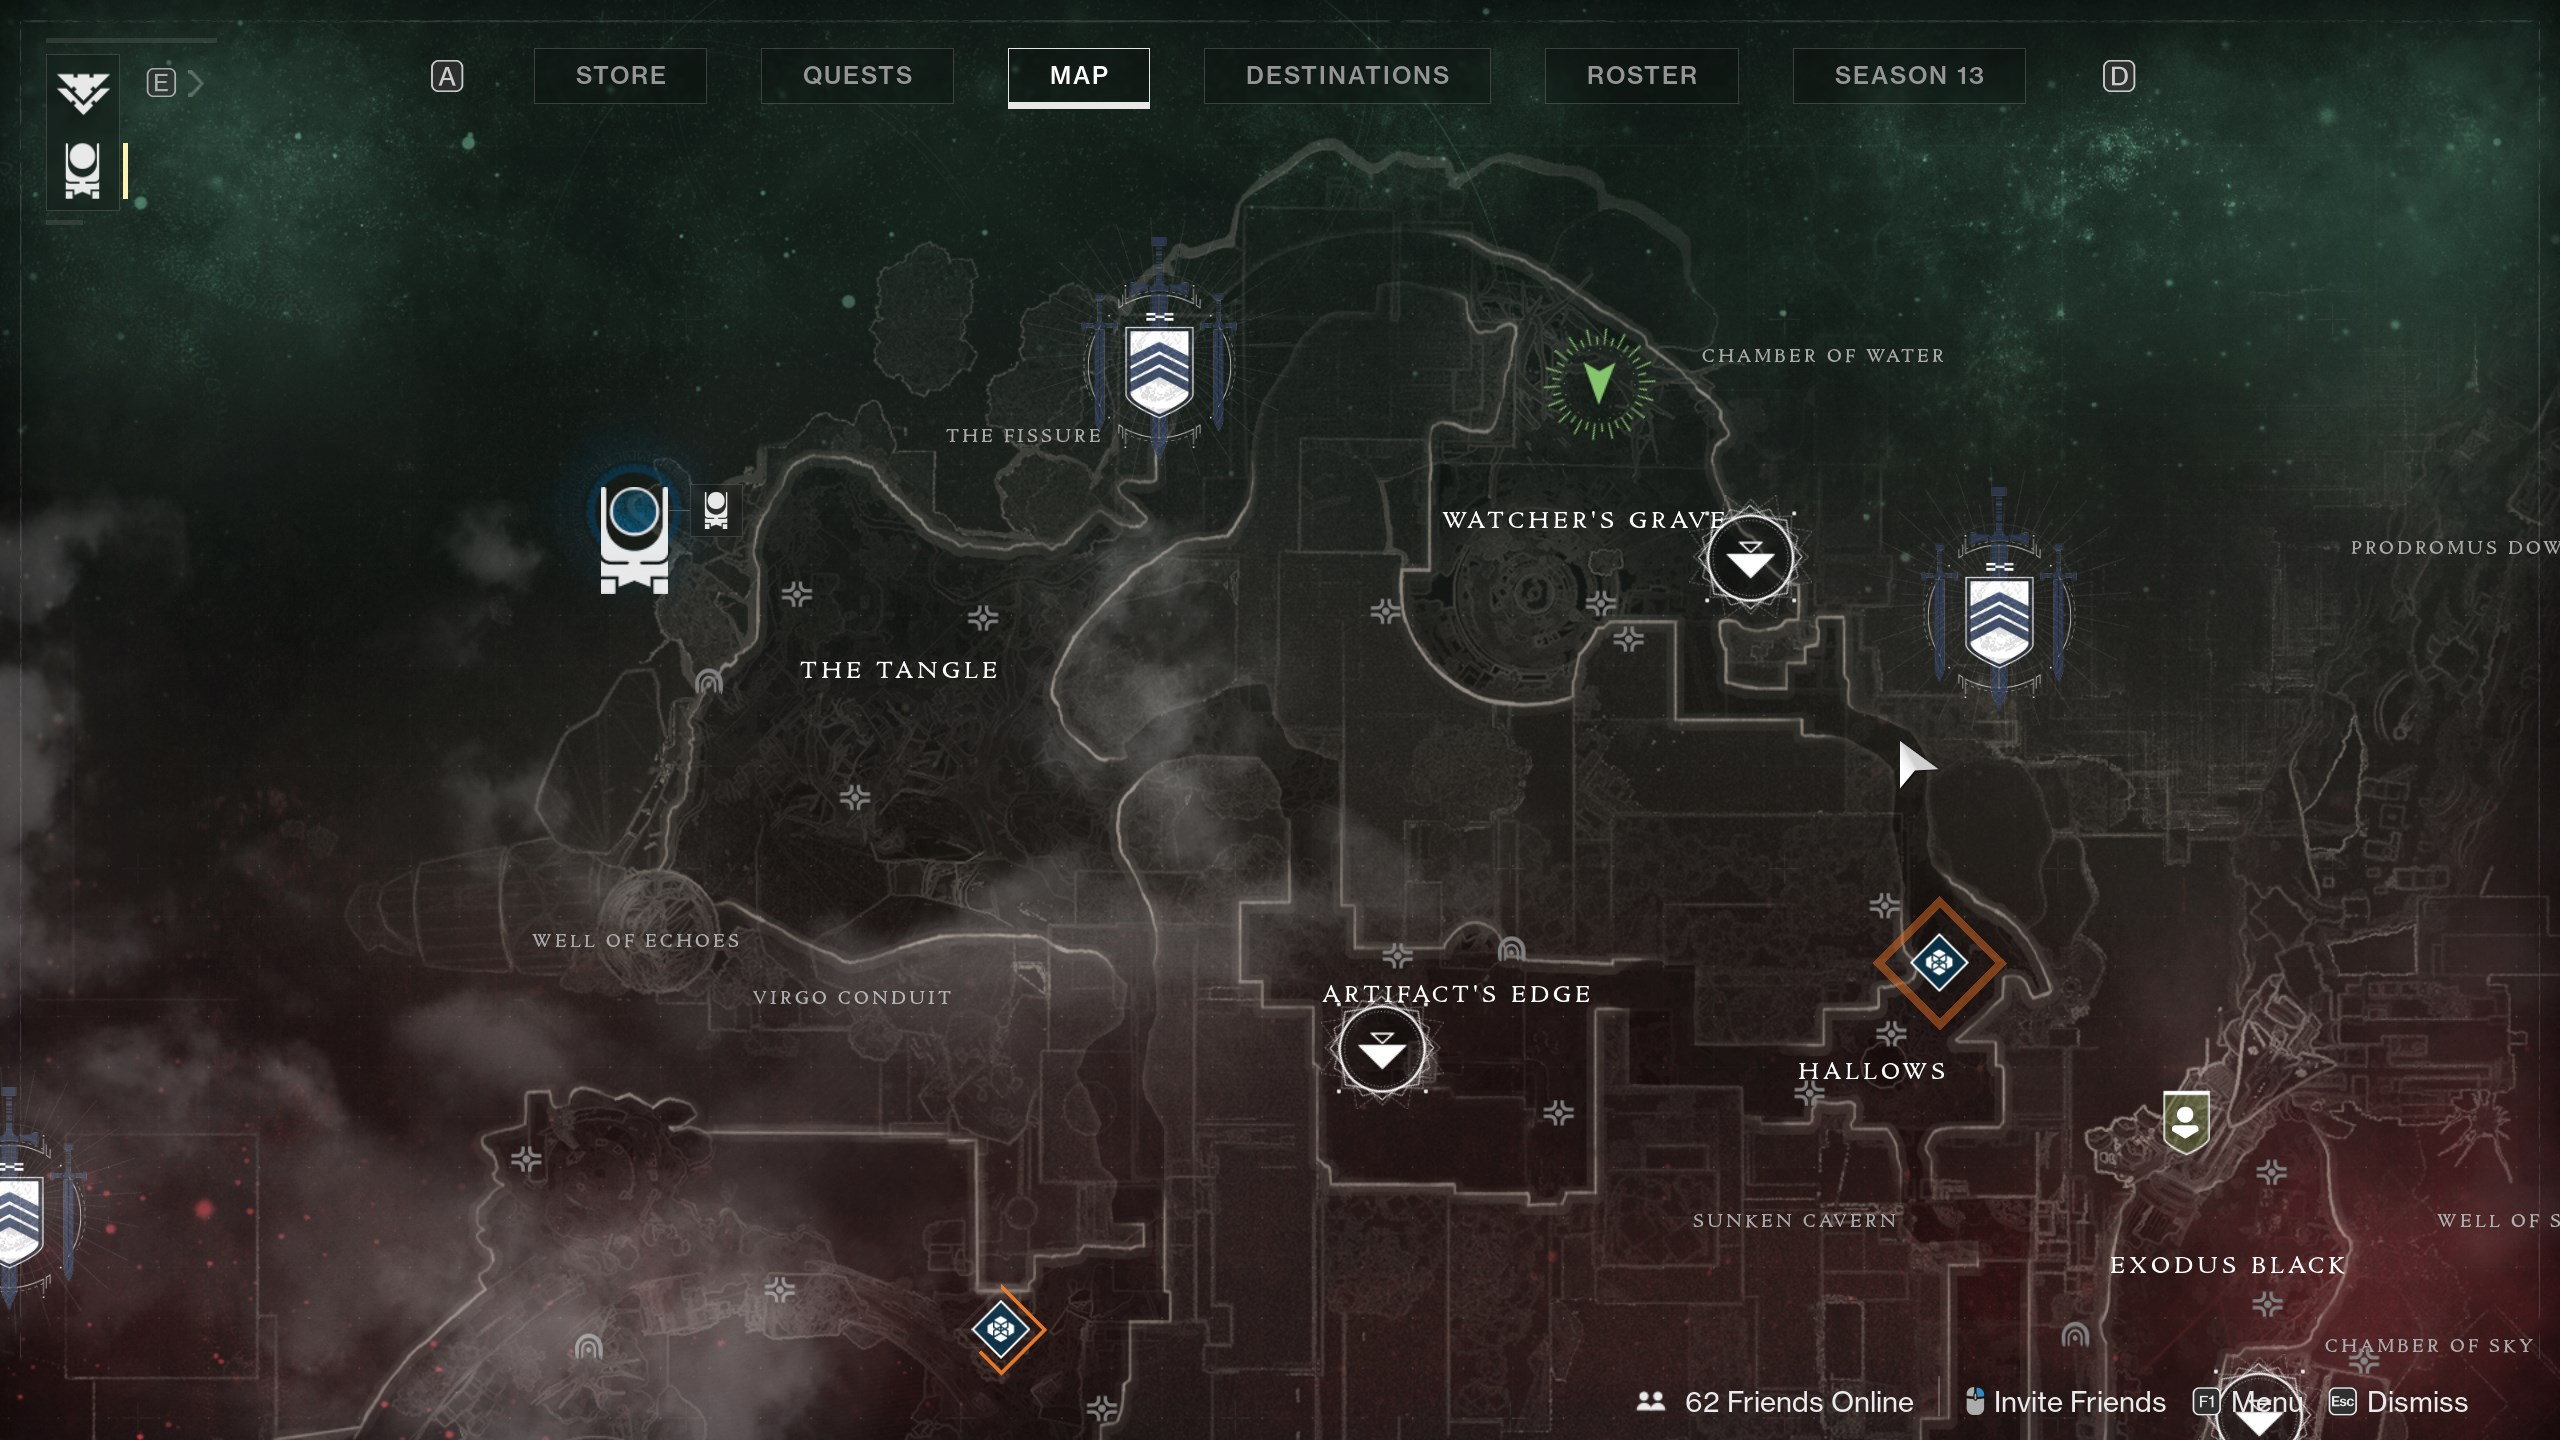 Xur's location and wares for February 26, 2021